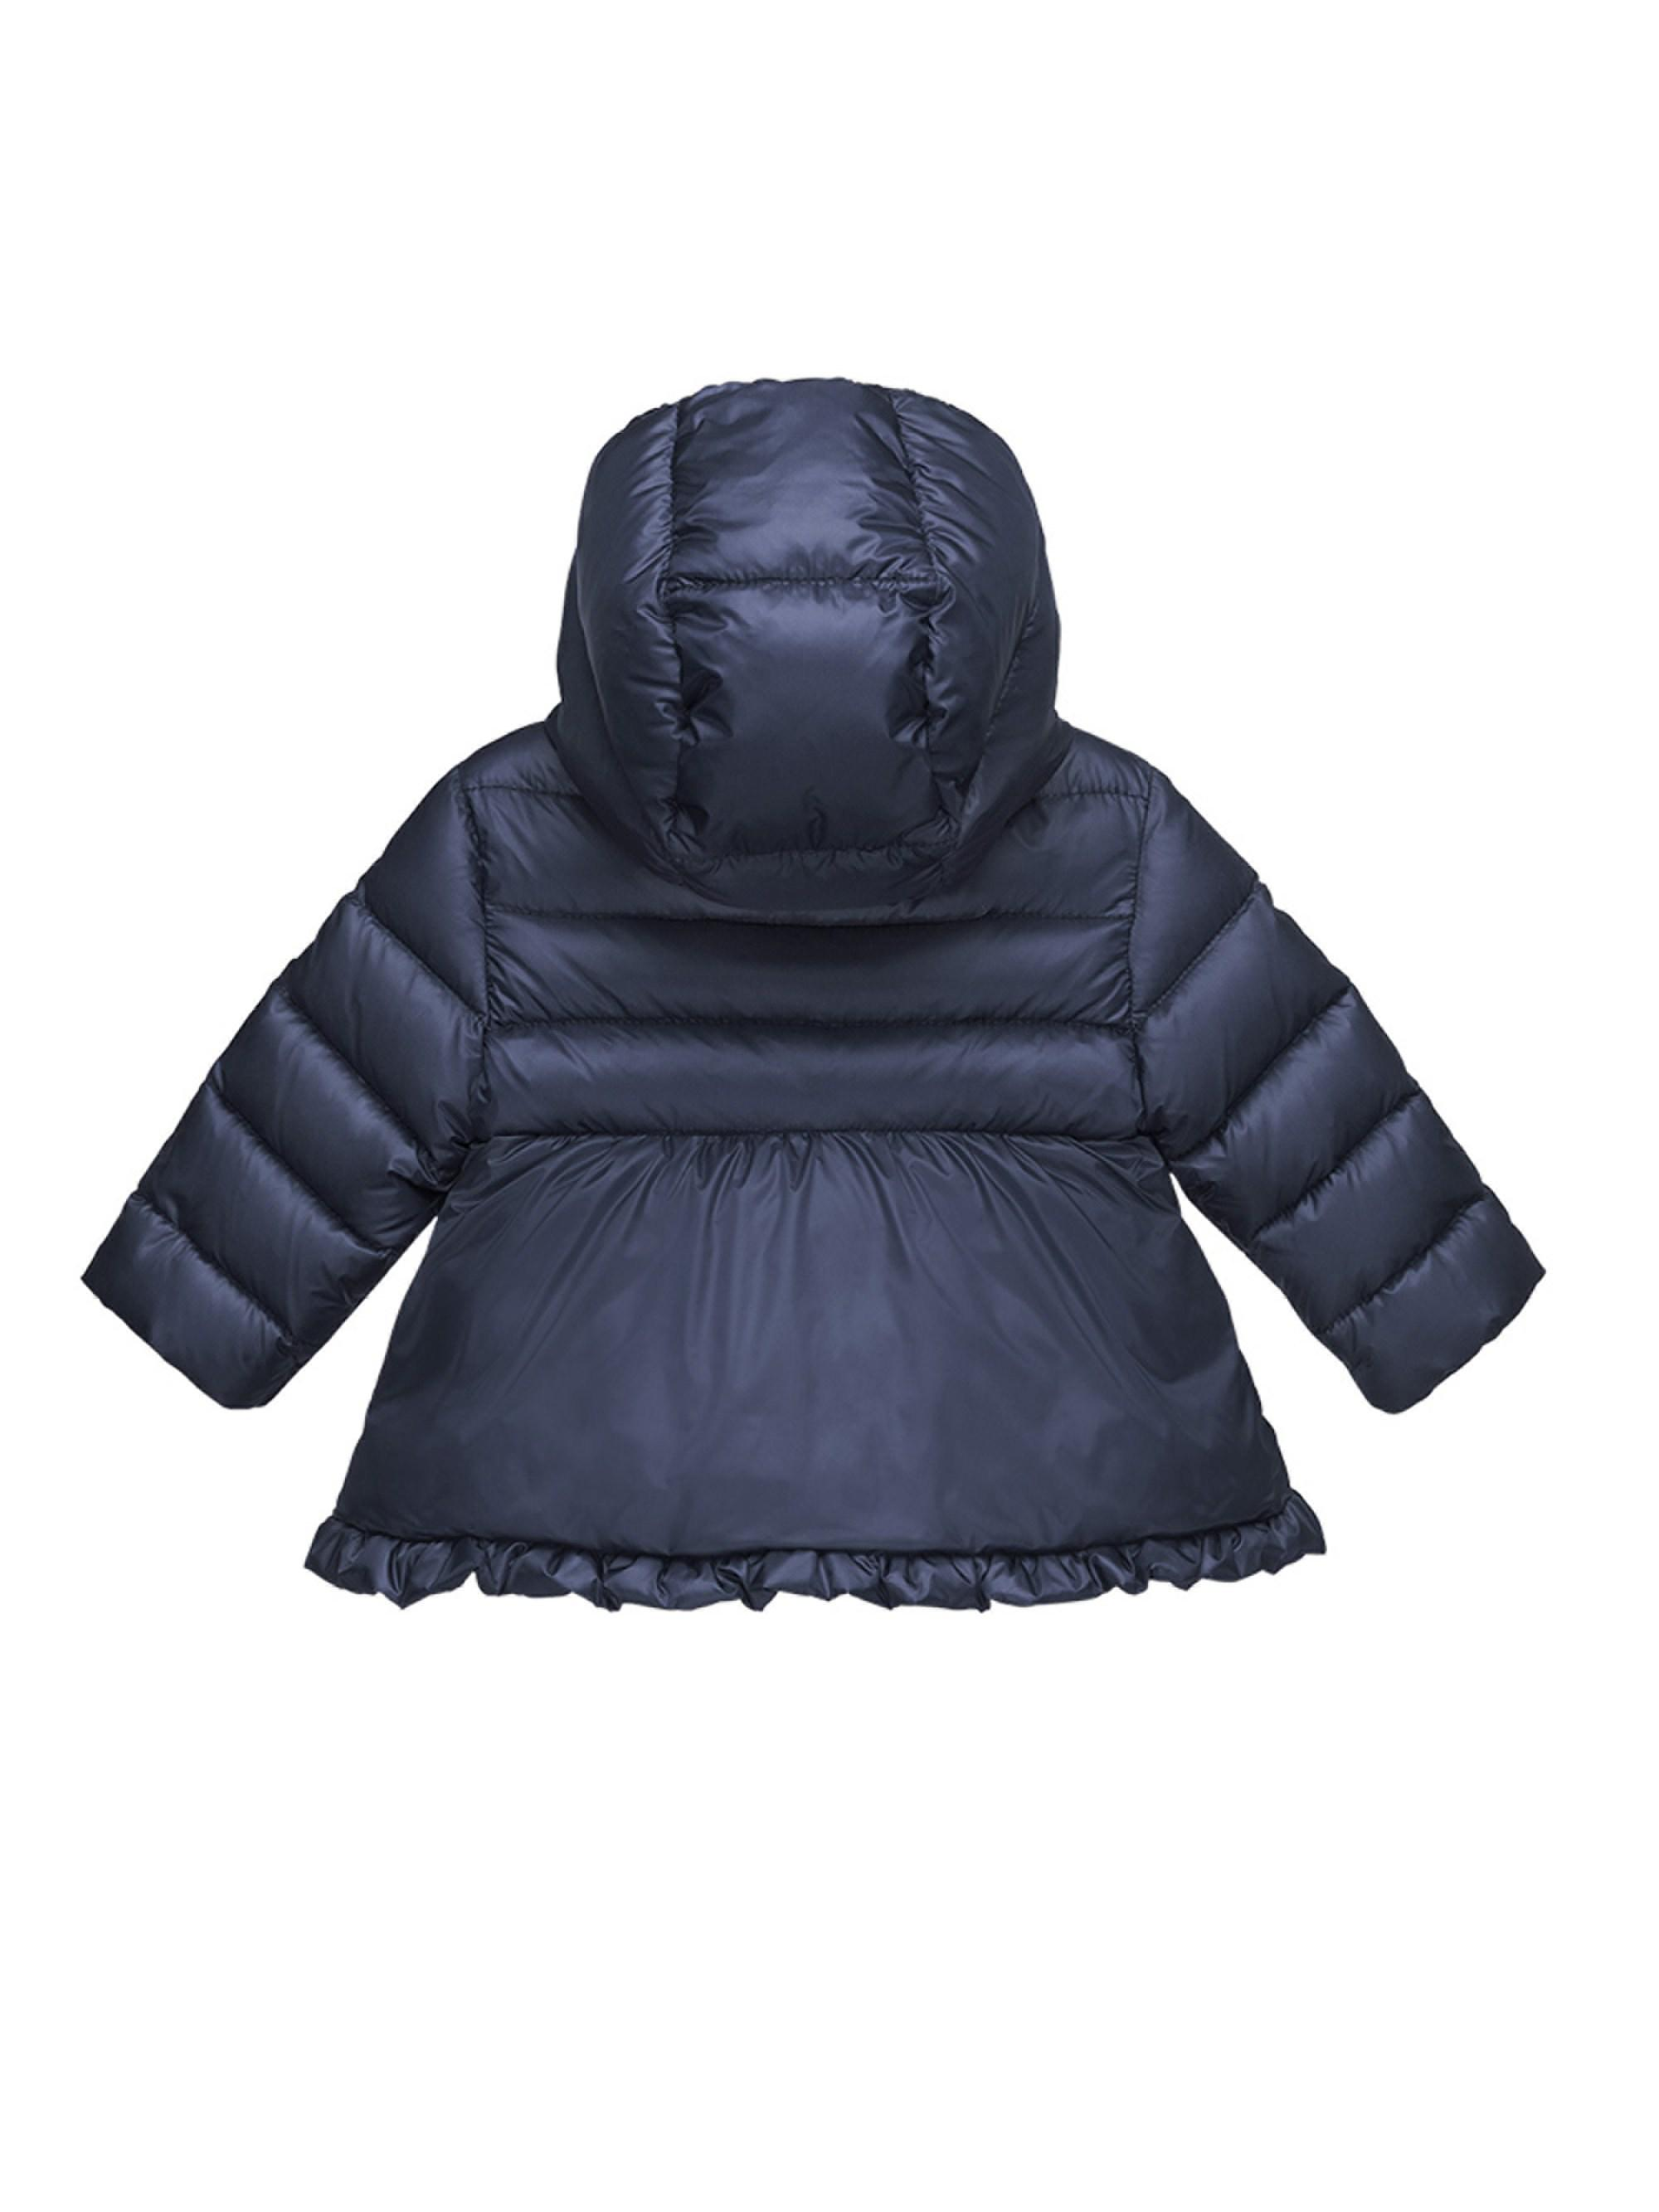 32a524139 Moncler Baby Girl's Odile Puffer Jacket in Blue - Lyst